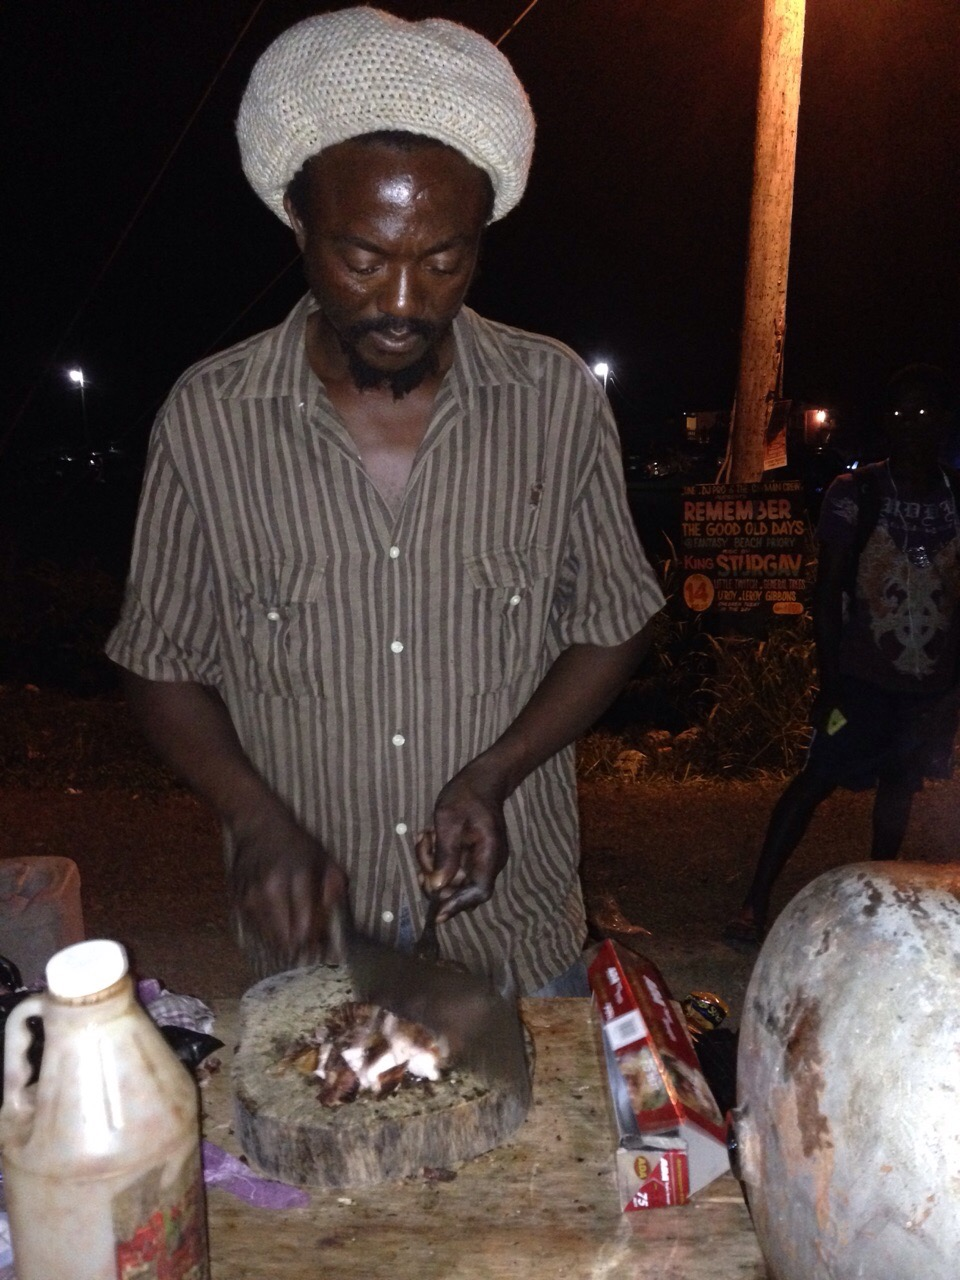 Jerk Chicken Man outside a street party